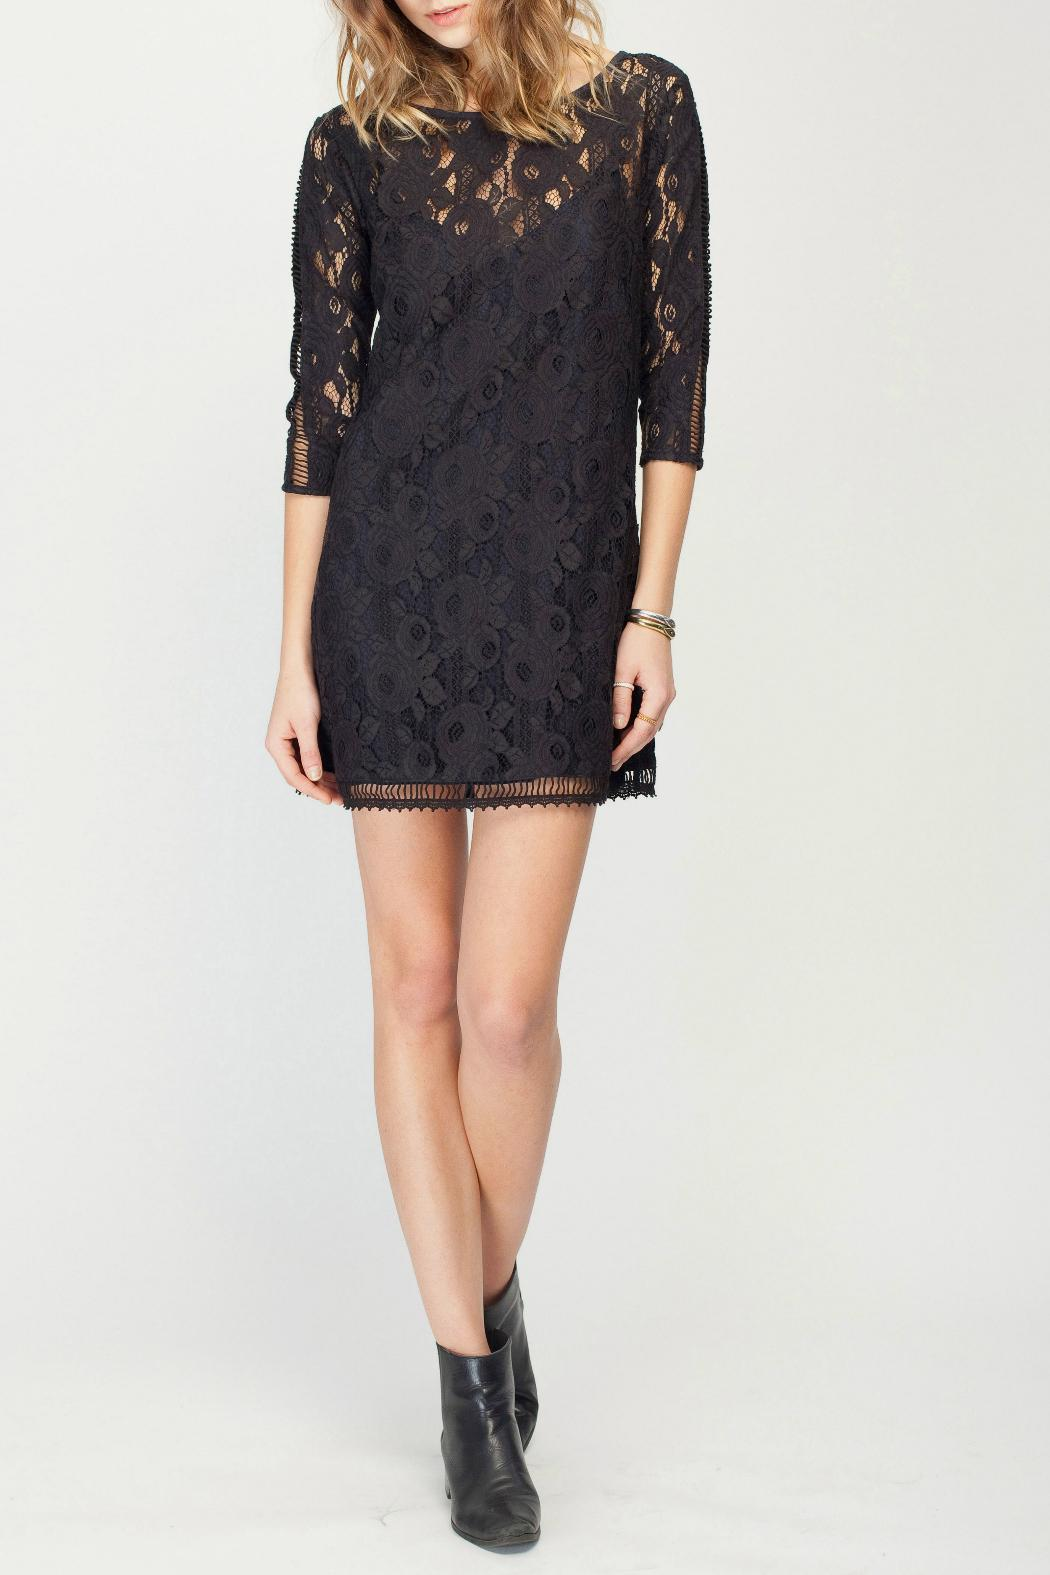 Gentle Fawn Lace Overlay Dress - Front Full Image